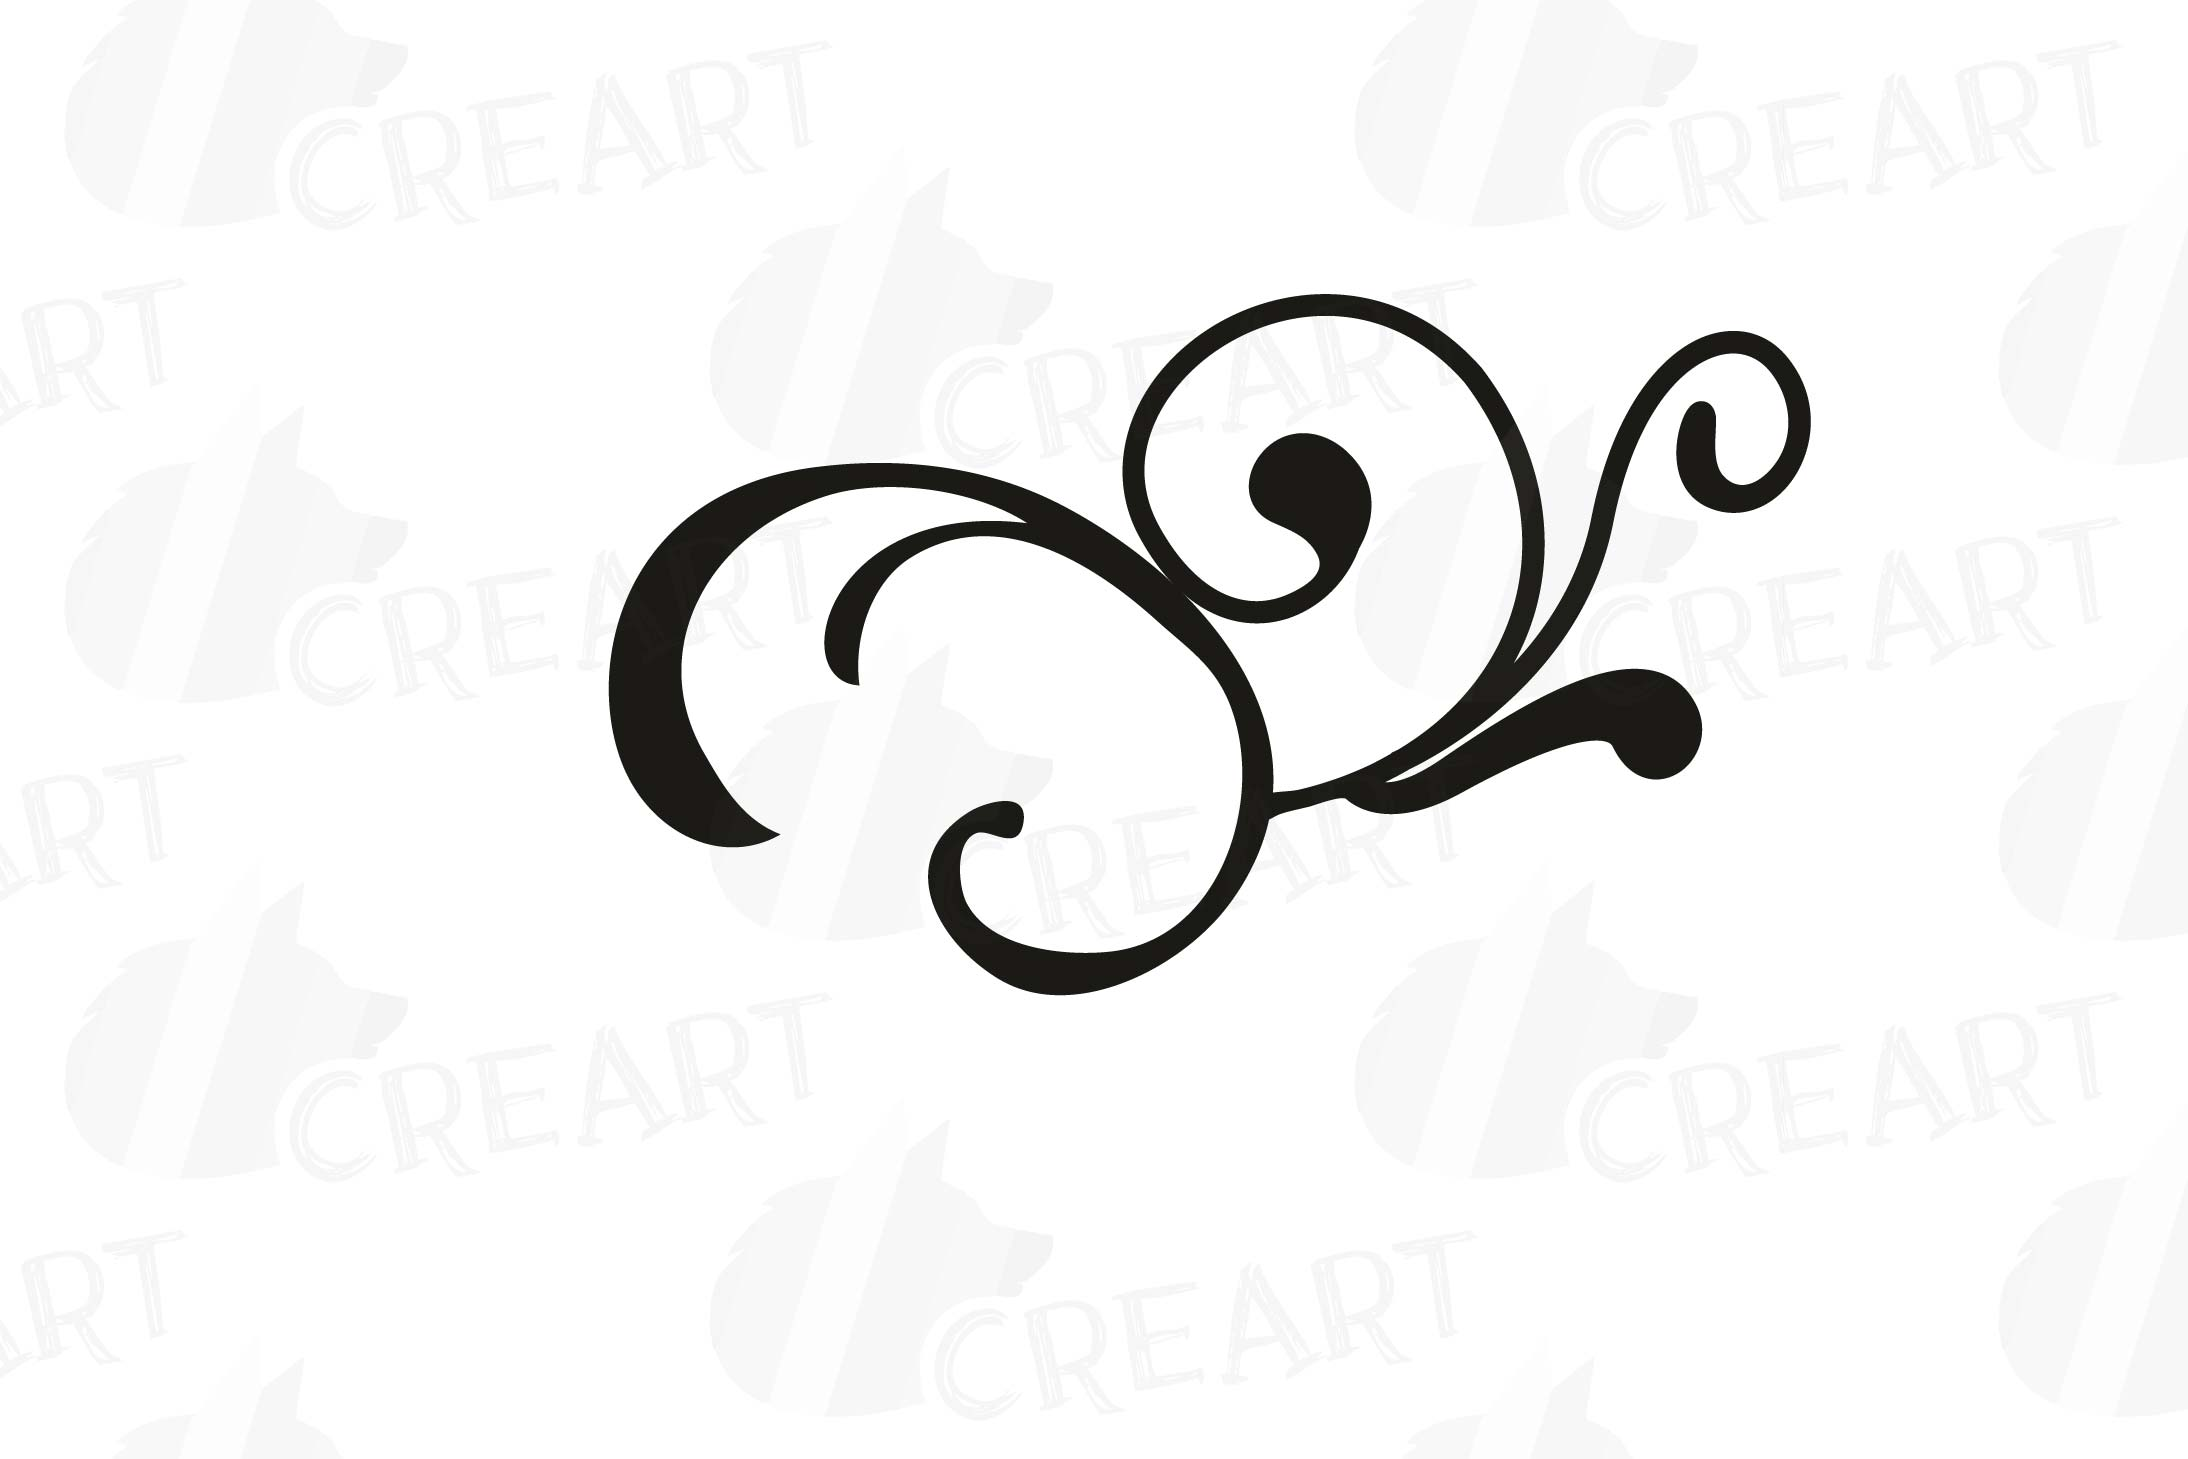 Calligraphy Swirls Clip Art, Calligraphic Doodles, svg, png.